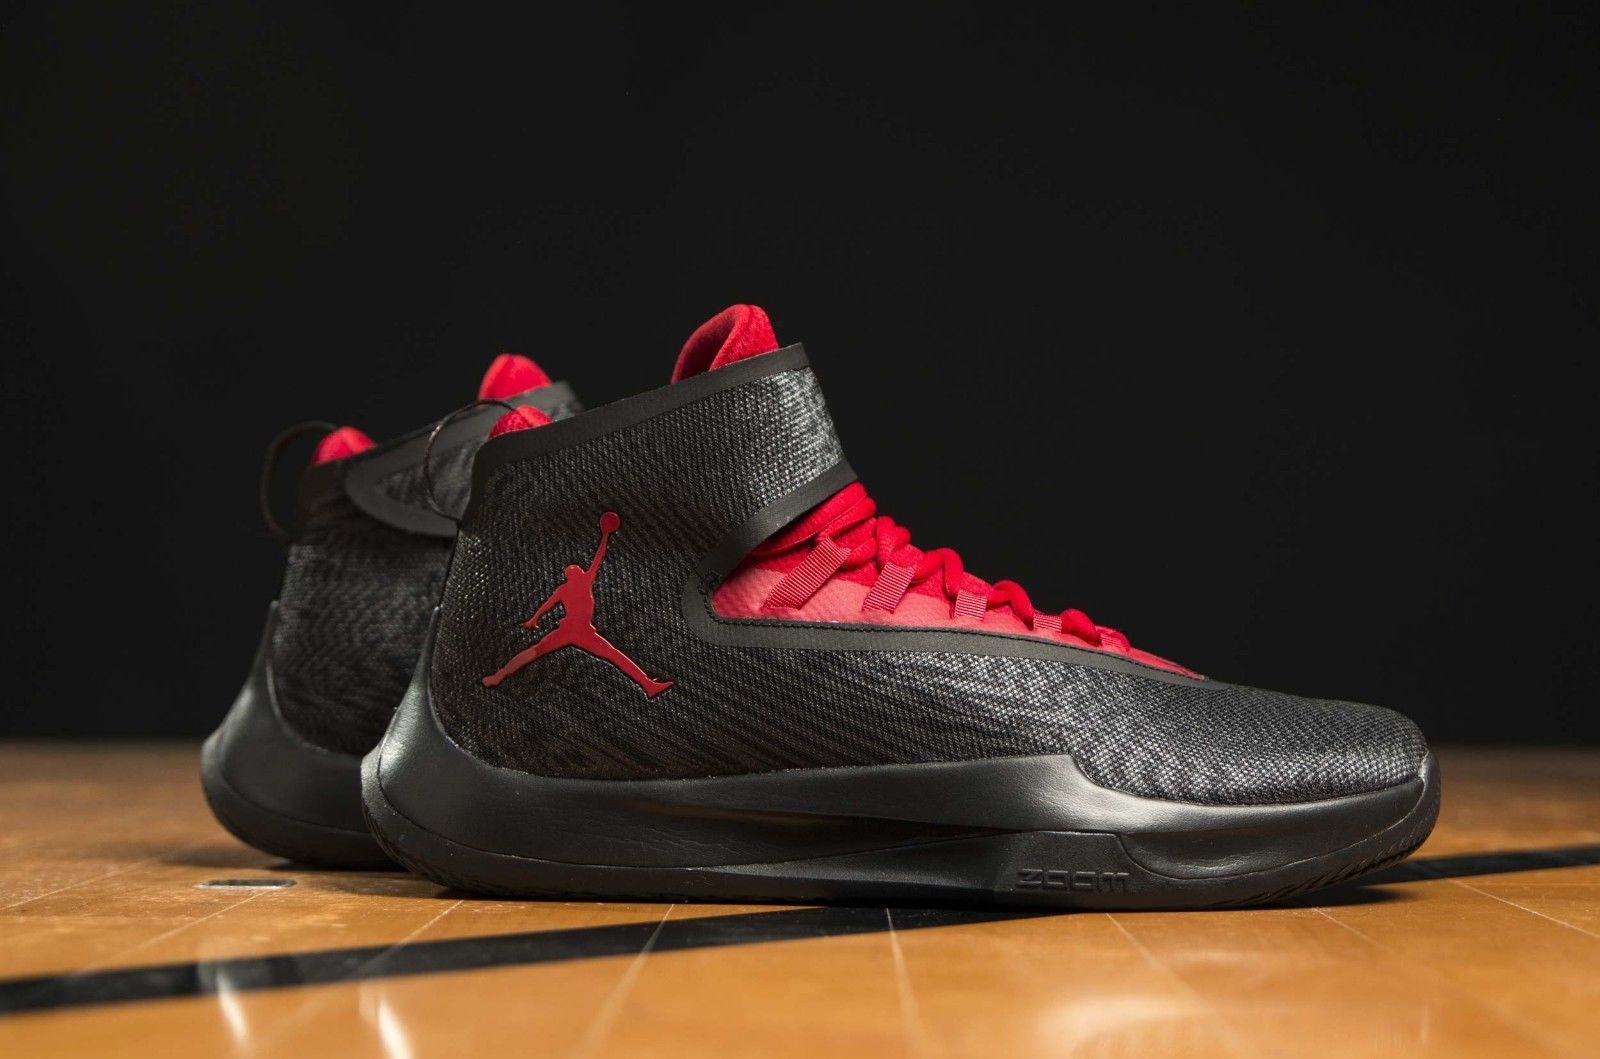 0db76a2a930e New Men s Jordan Fly Unlimited Black Gym Red Basketball Shoes AA1282-011  Size 13